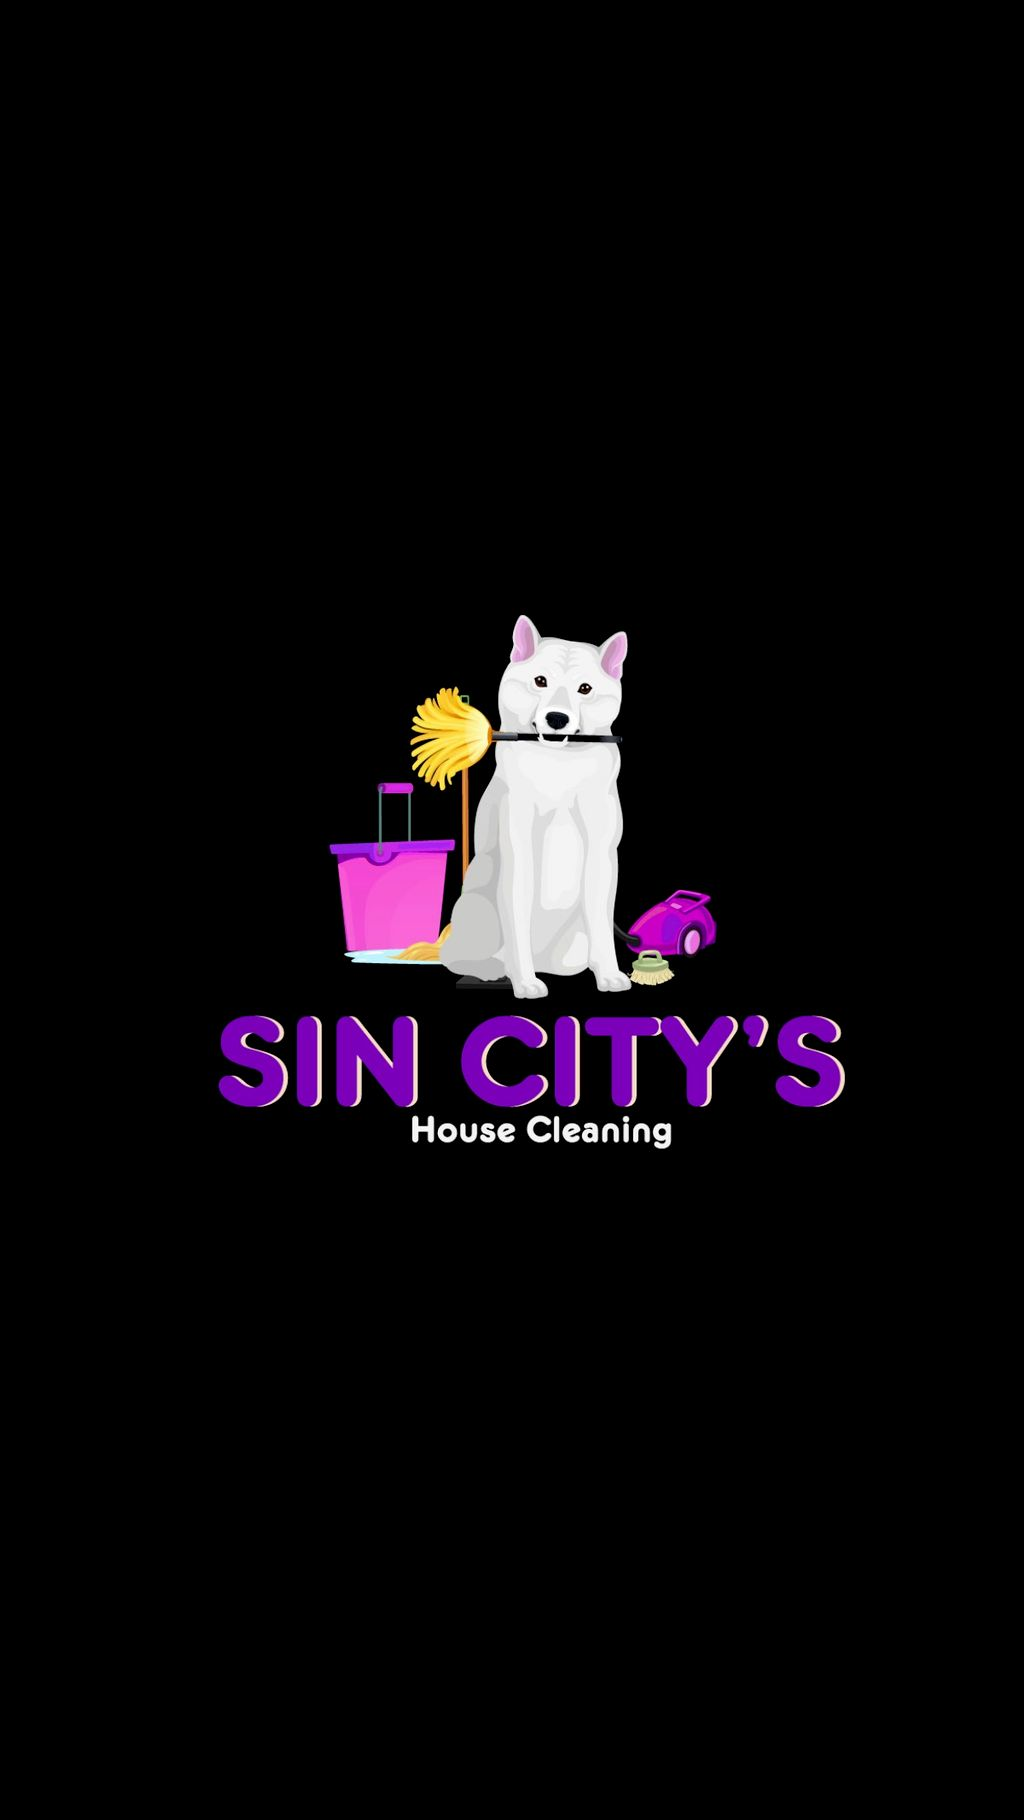 Sin Citys House Cleaning